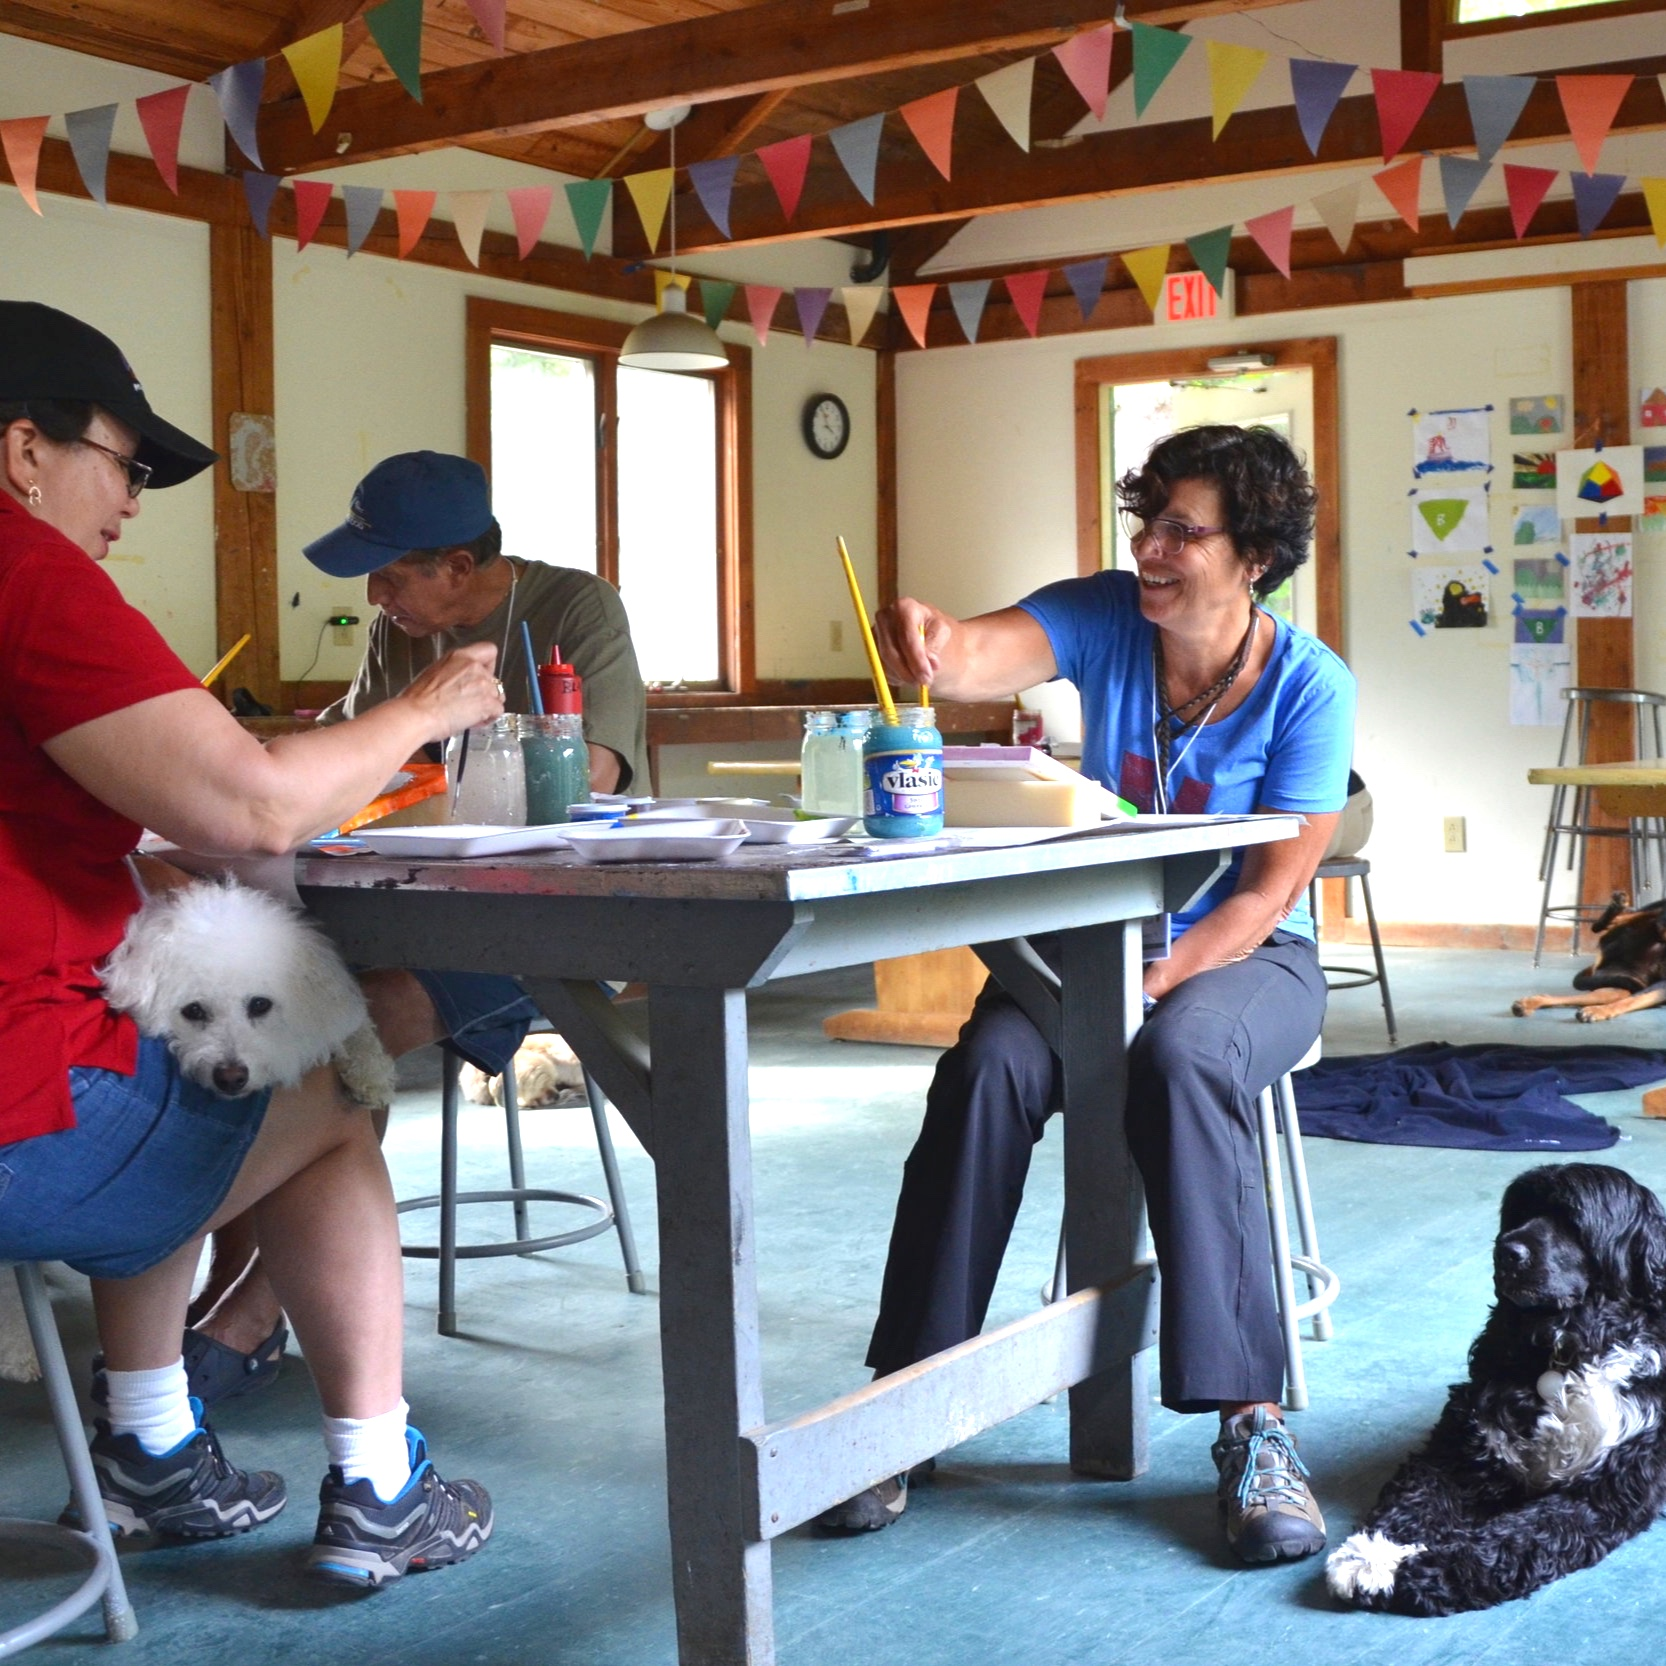 Arts & Crafts - You can make a fun tug toy, decorate a frame for your dog's photo, create a dog brag book, or paint your pup! We're always adding new dog-related projects. Relax, enjoy some music, and sip a little wine while you chat and create with your dog resting at your feet.